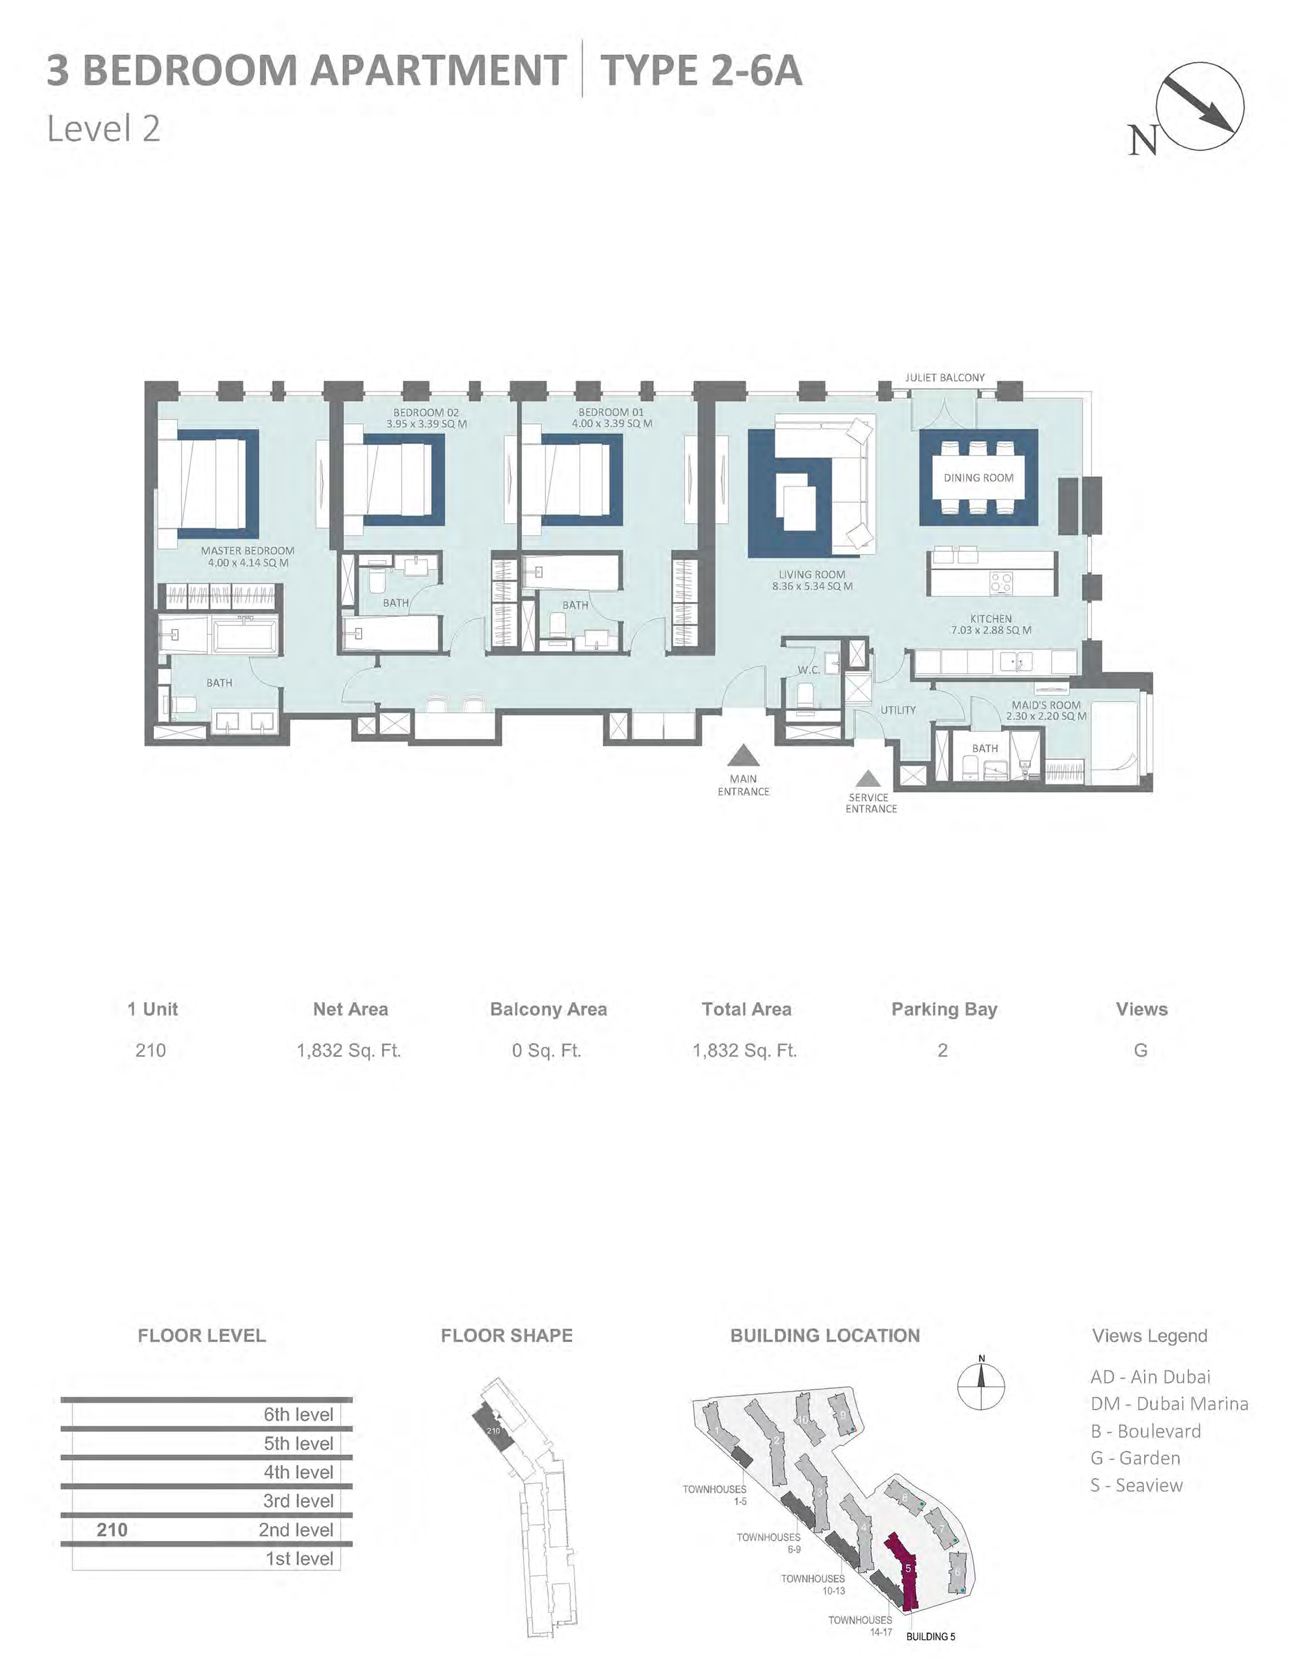 Building 5 - 3 Bedroom Type 2-6A Level 2 , Size 1832    sq. ft.